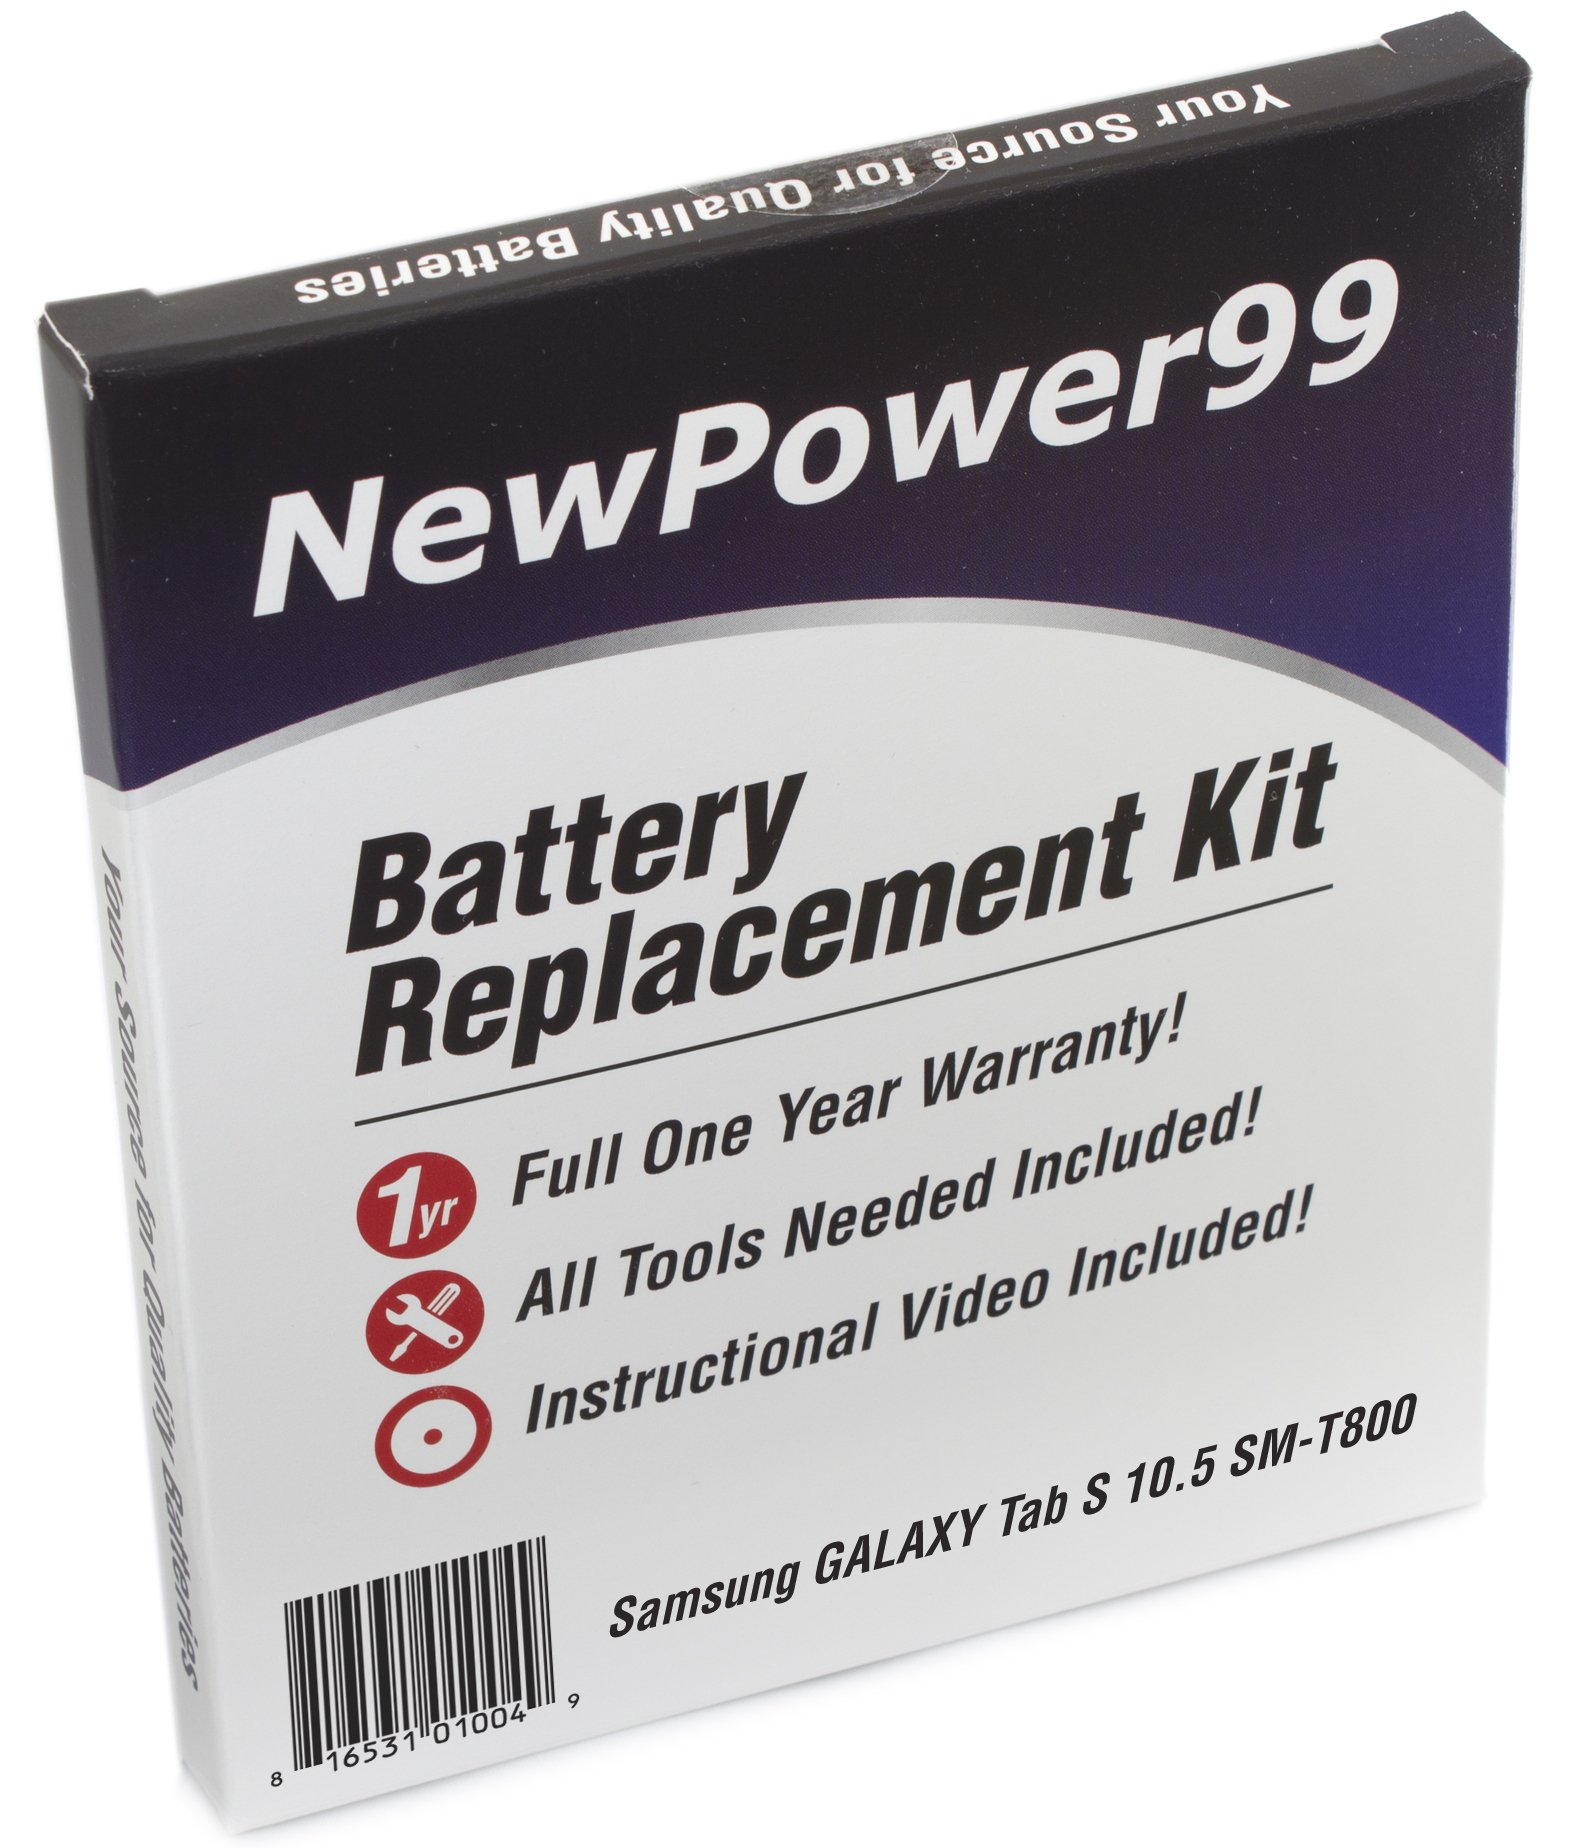 NewPower99 Samsung GALAXY Tab S 10.5 SM-T800 Battery Replacement Kit with Video Installation DVD, Installation Tools, and Extended Life Battery